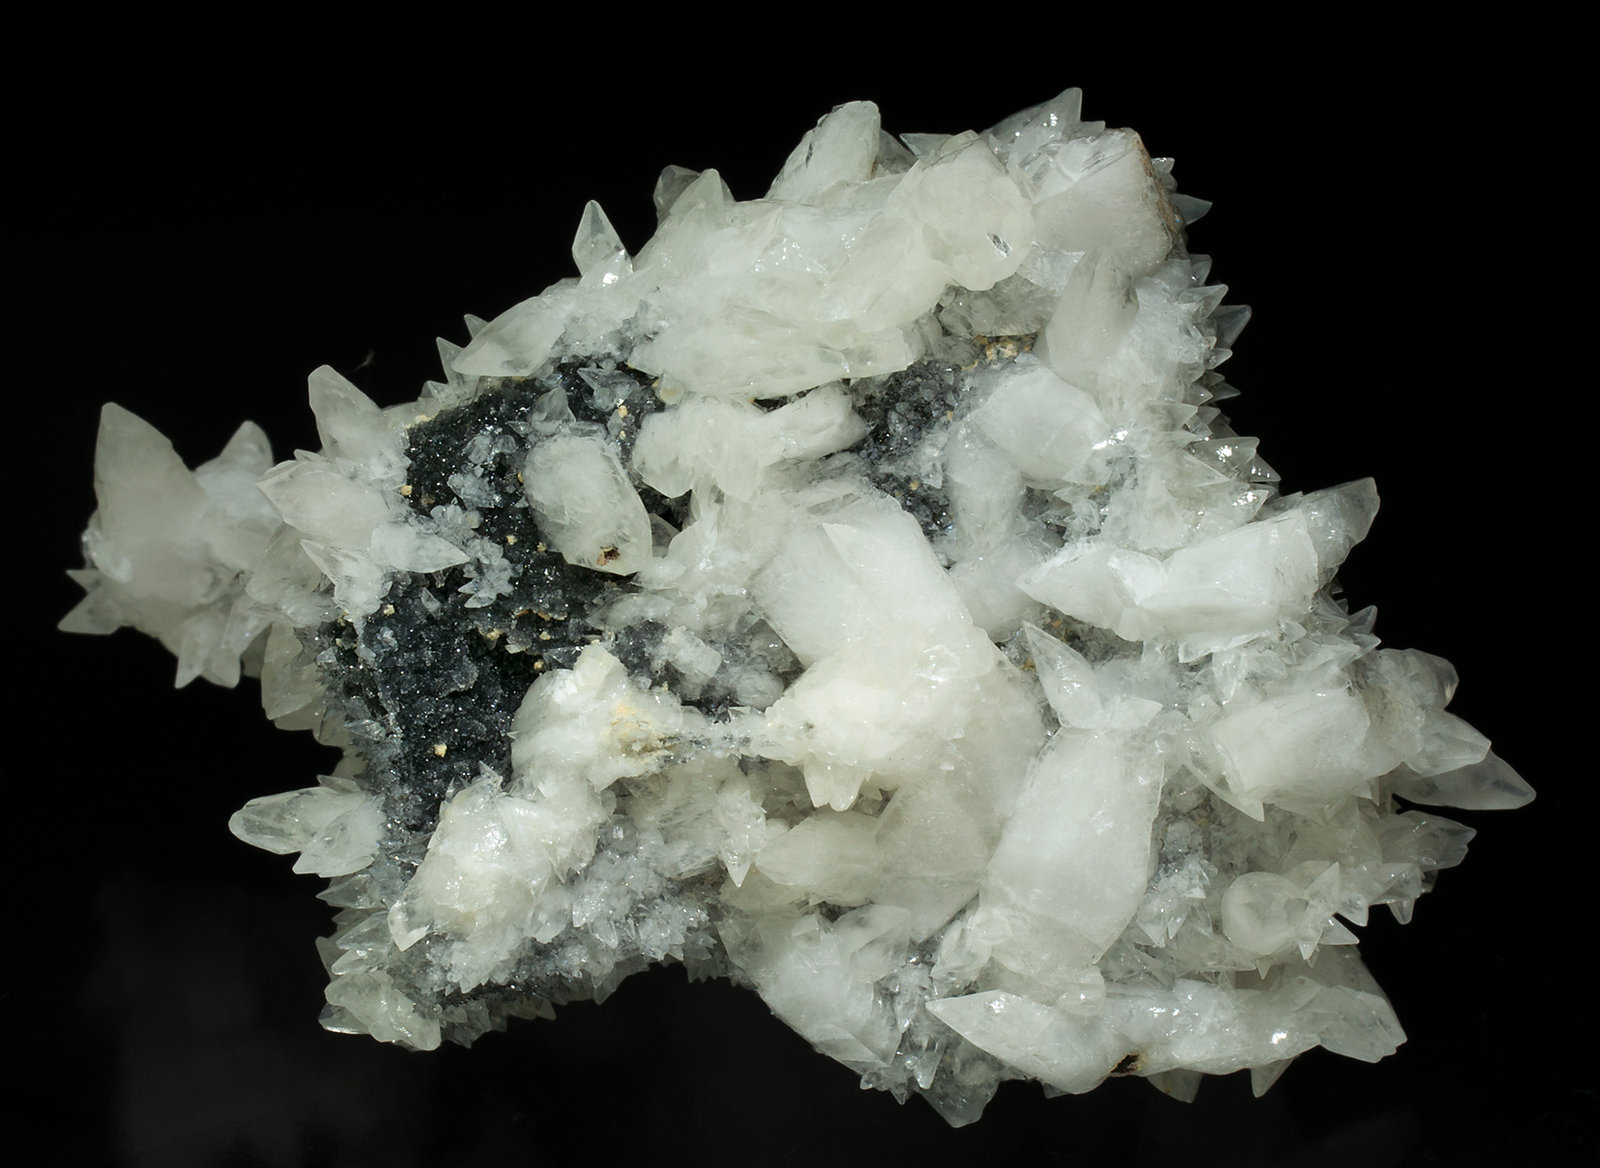 specimens/s_imagesX9/Calcite-JR96X9r.jpg